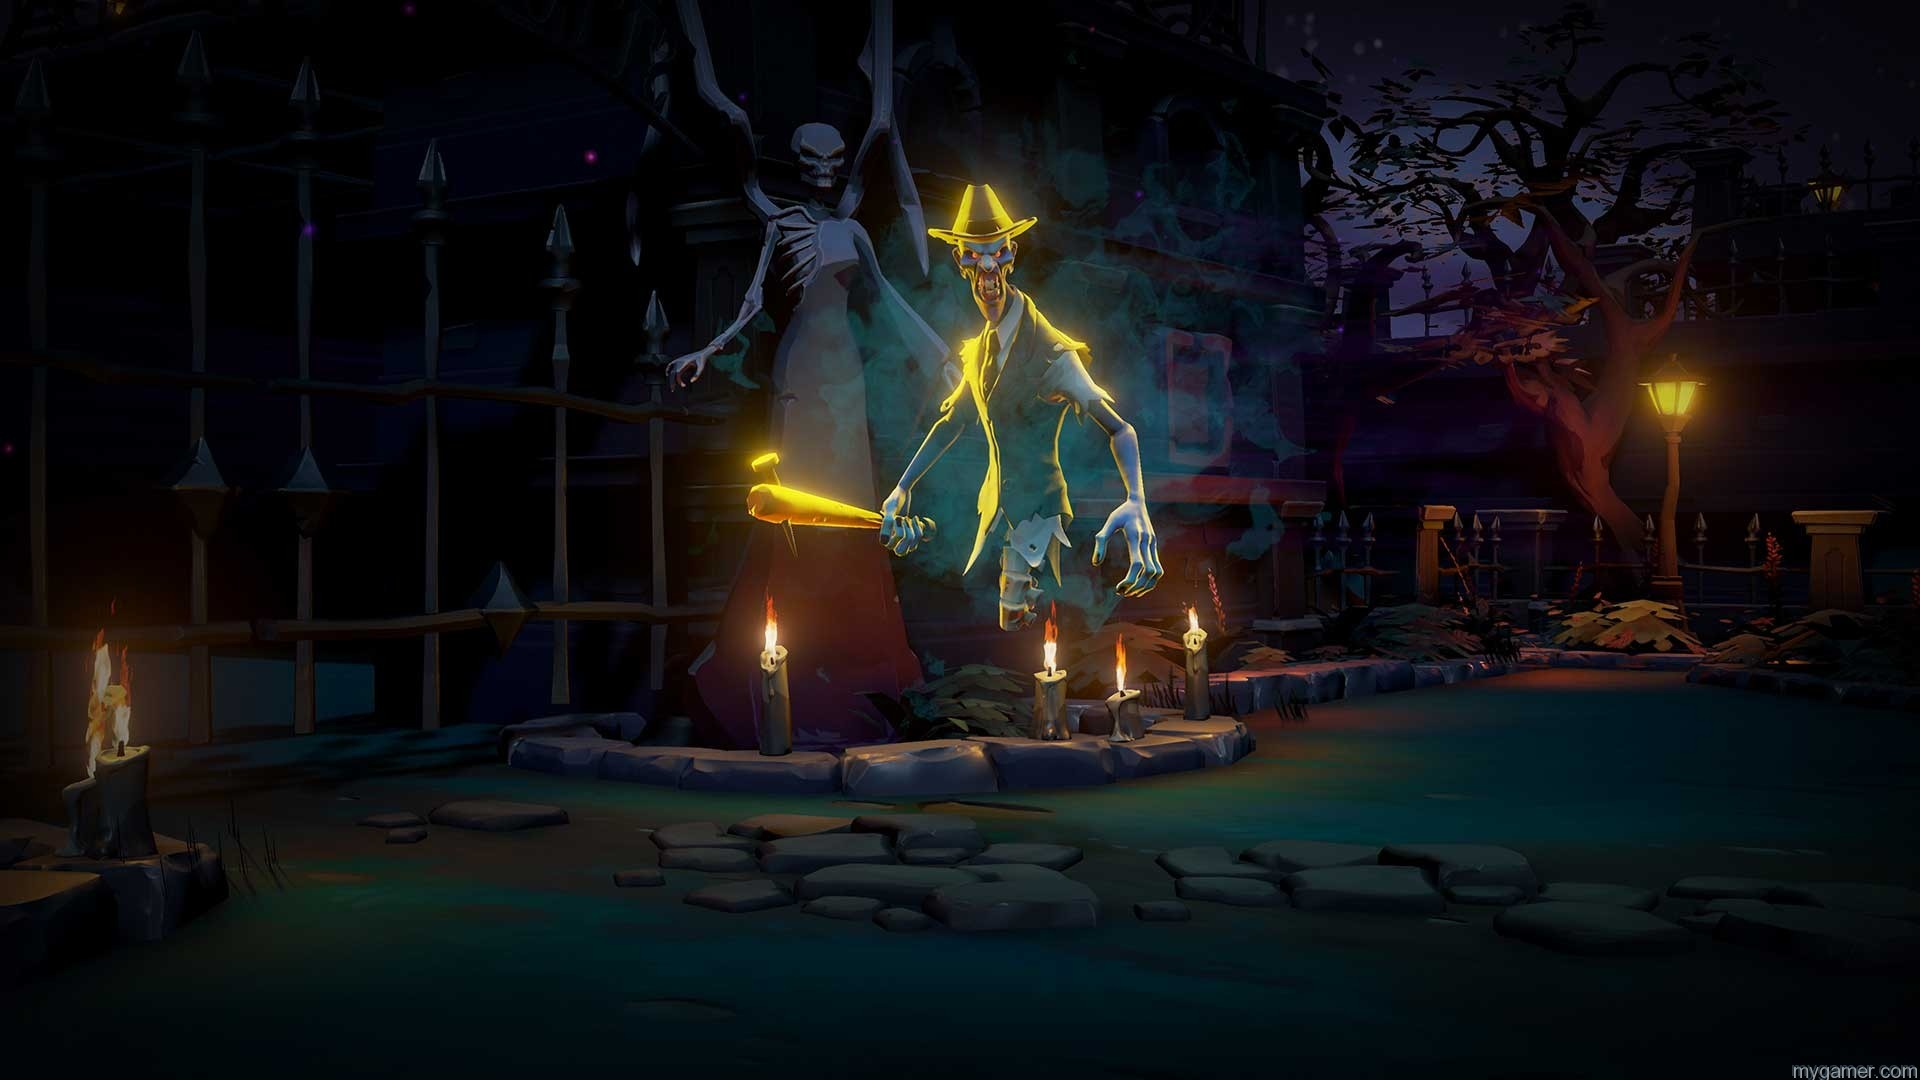 Ghostbusters_Game_4 Activision Releasing Two Ghostbuster Games This Summer - One Console and One Mobile Activision Releasing Two Ghostbuster Games This Summer - One Console and One Mobile Ghostbusters Game 4